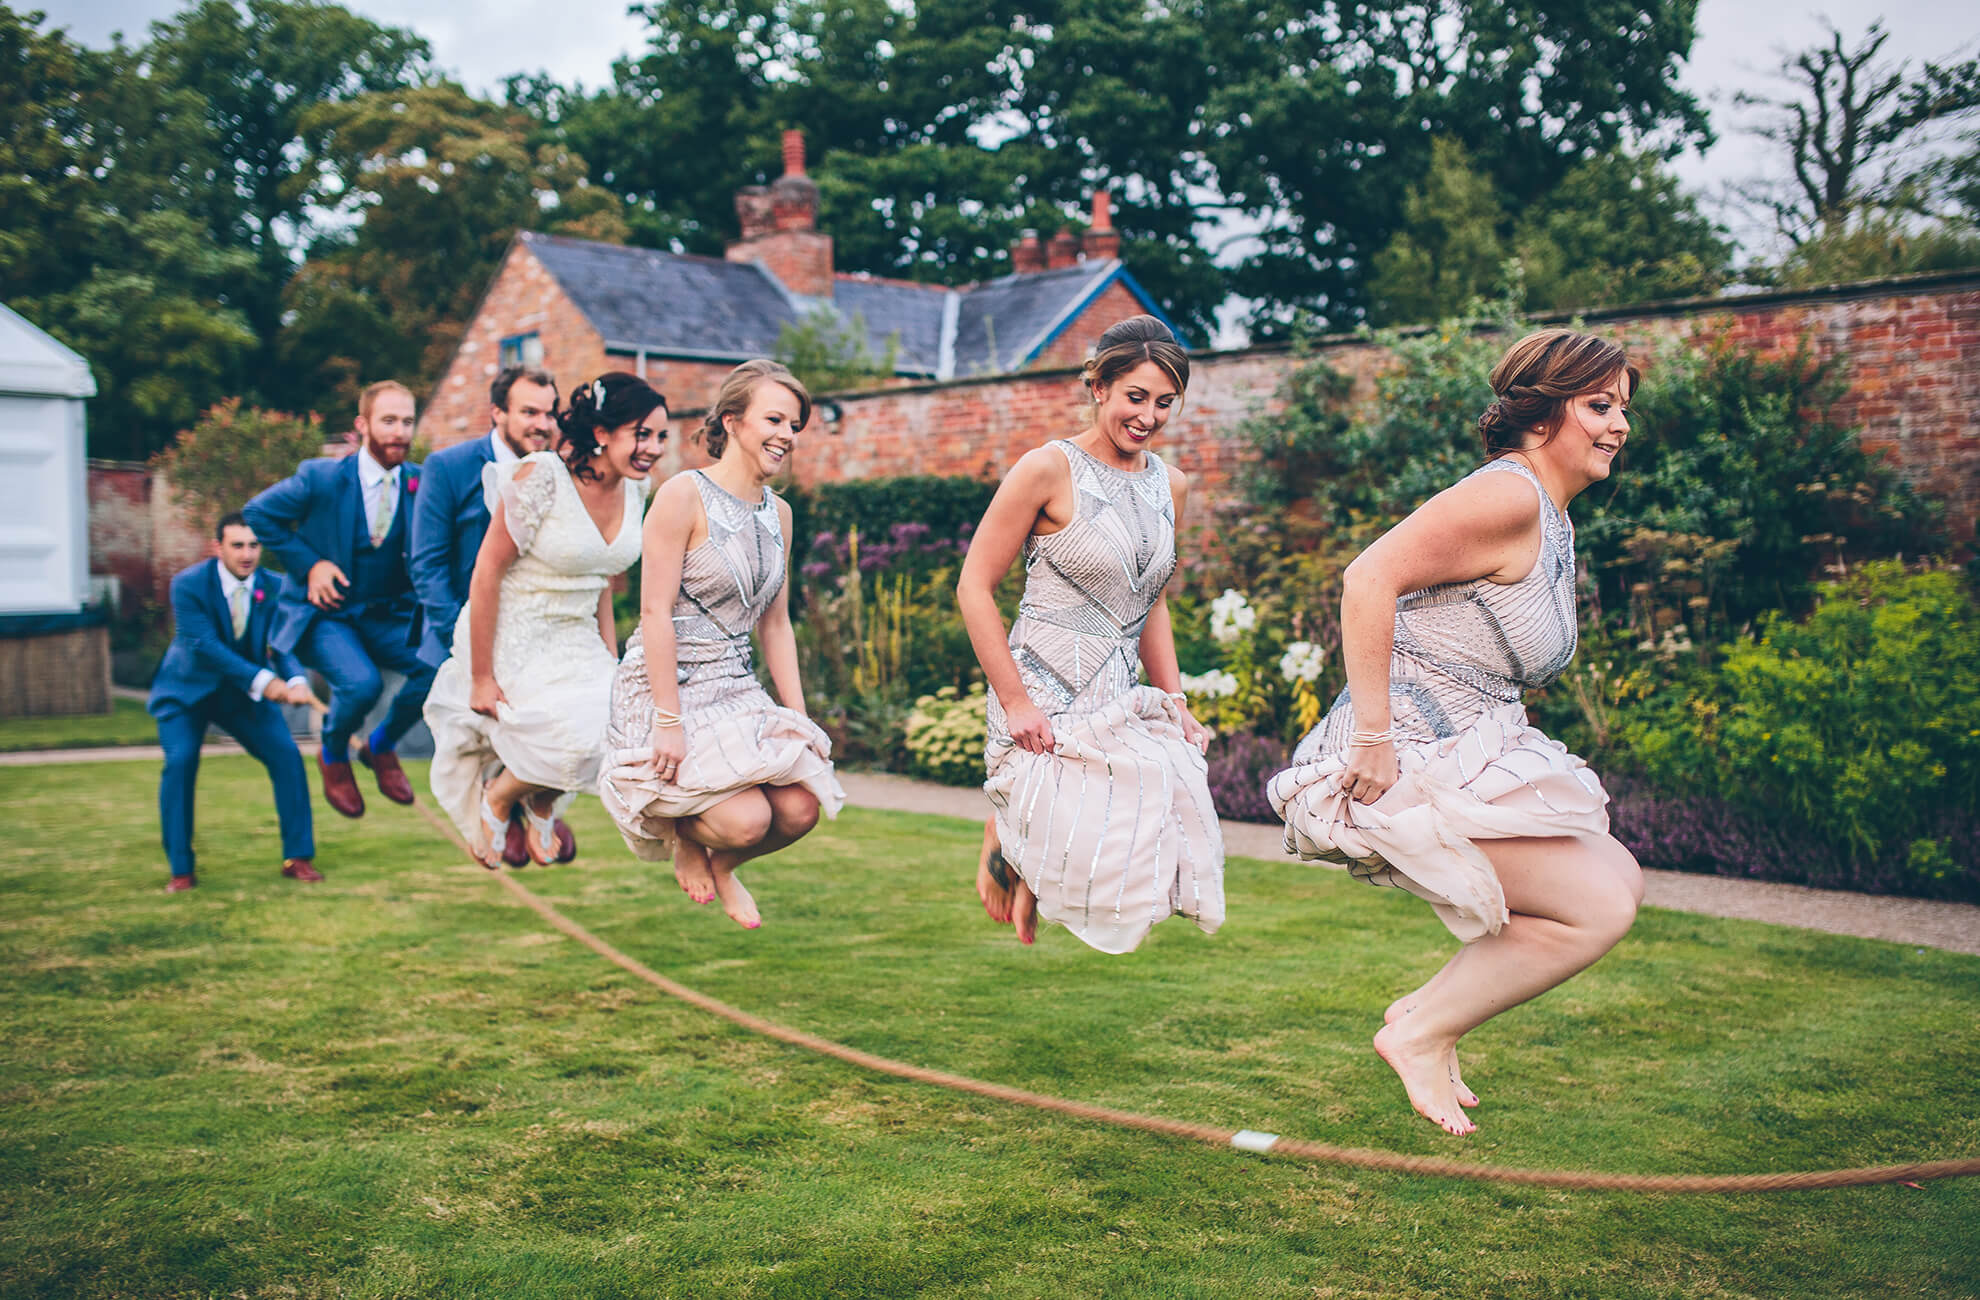 The bridal party enjoy a skipping competition in the gardens at the exclusive-use wedding venue in Cheshire